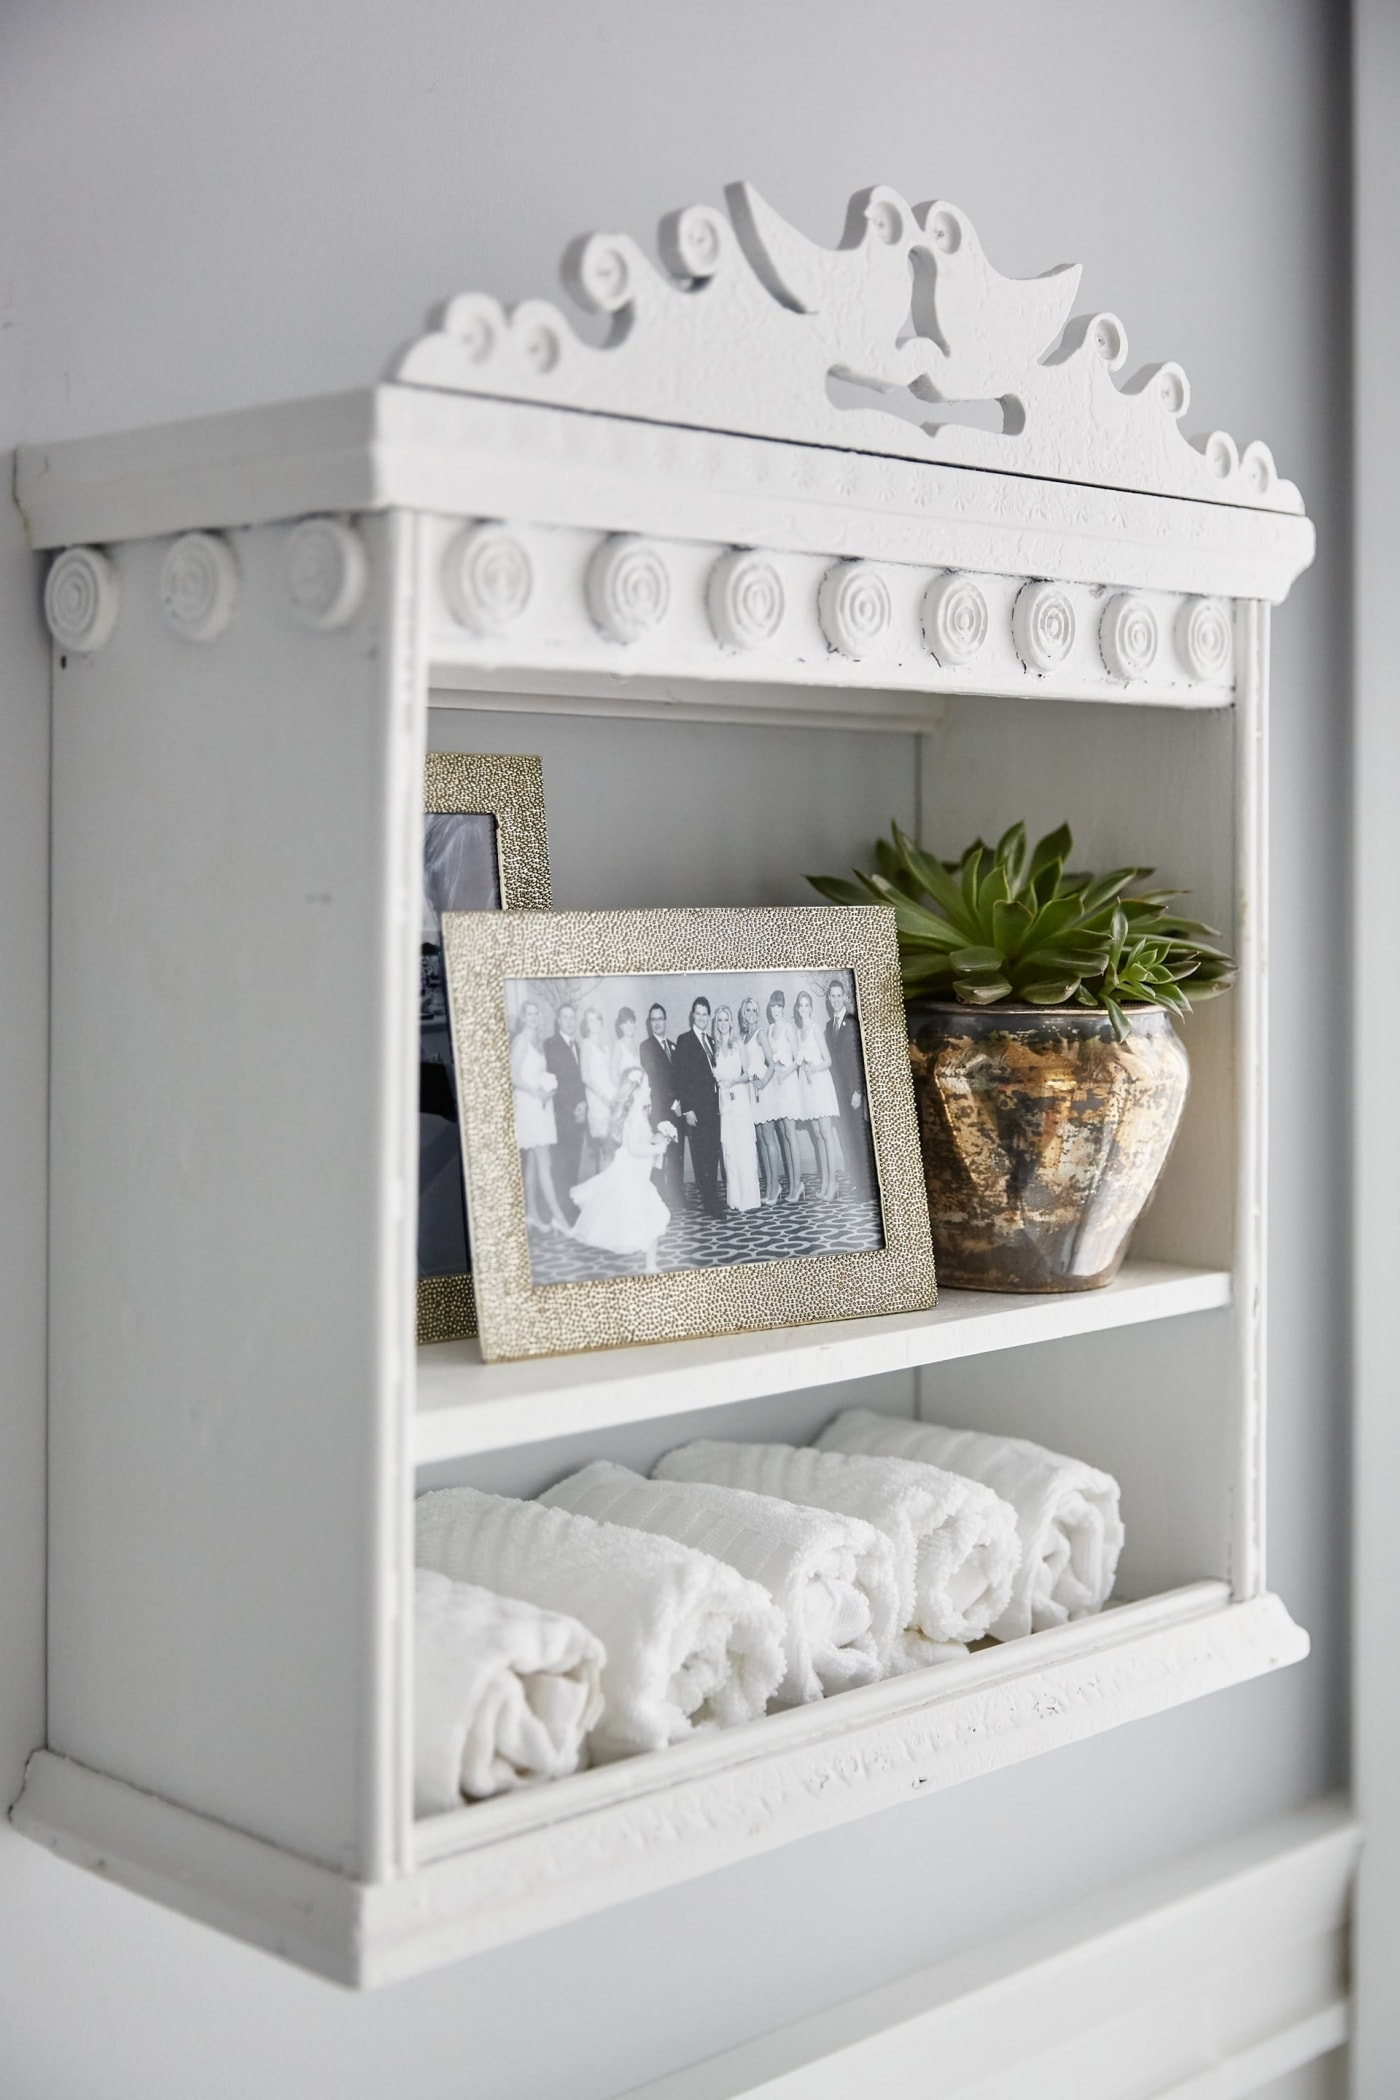 Vintage white shelves with ornamental detail to hold accessories in bathroom